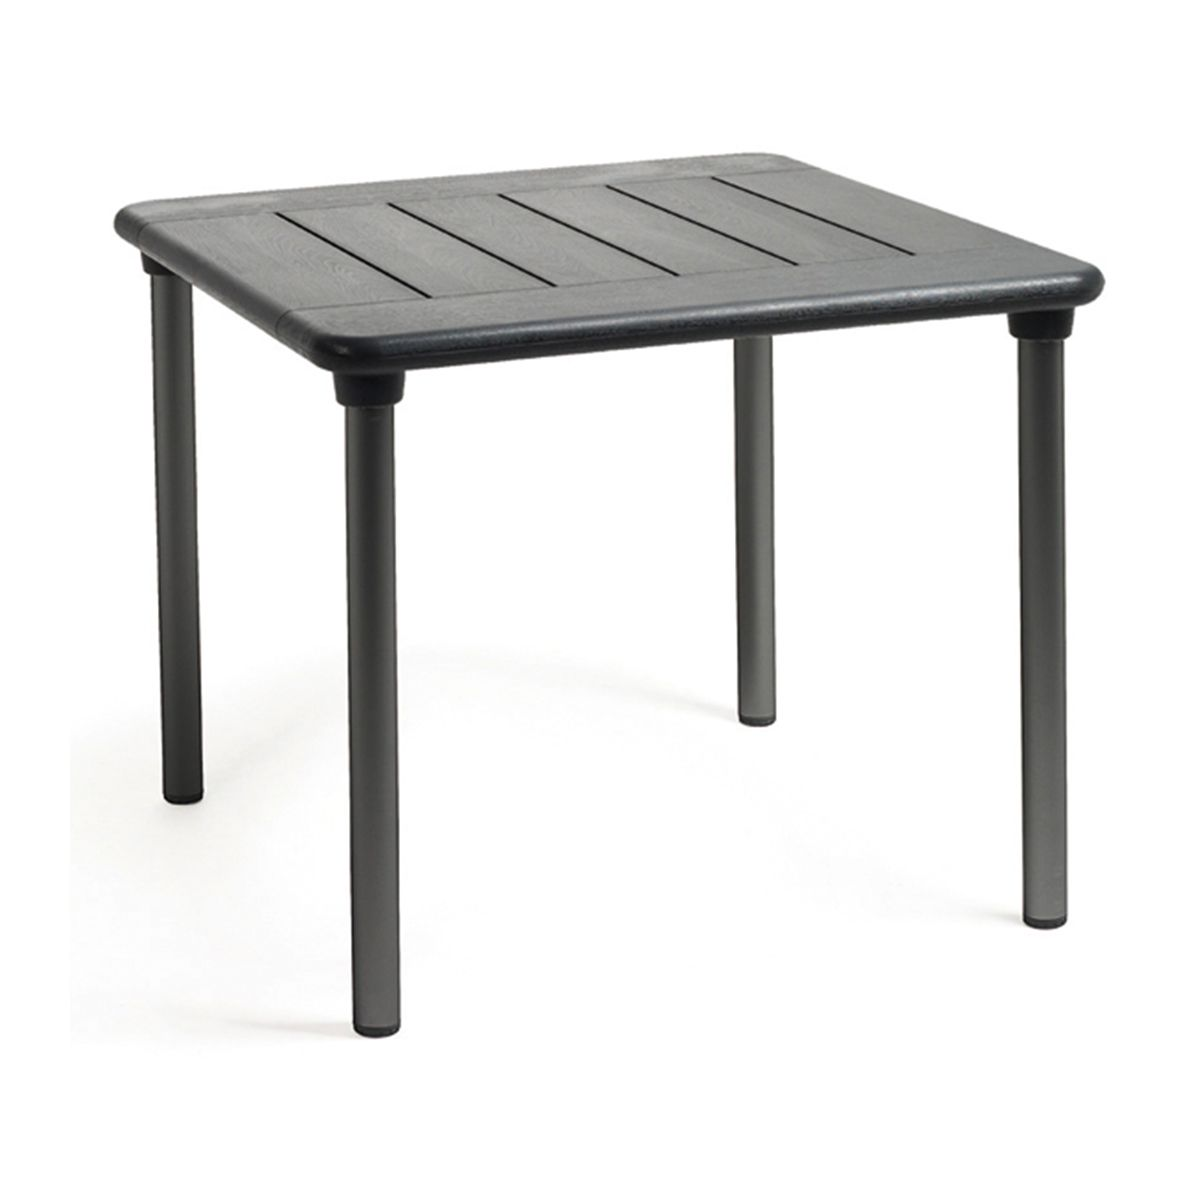 table d appoint jardin terrasse maestrale nardi. Black Bedroom Furniture Sets. Home Design Ideas